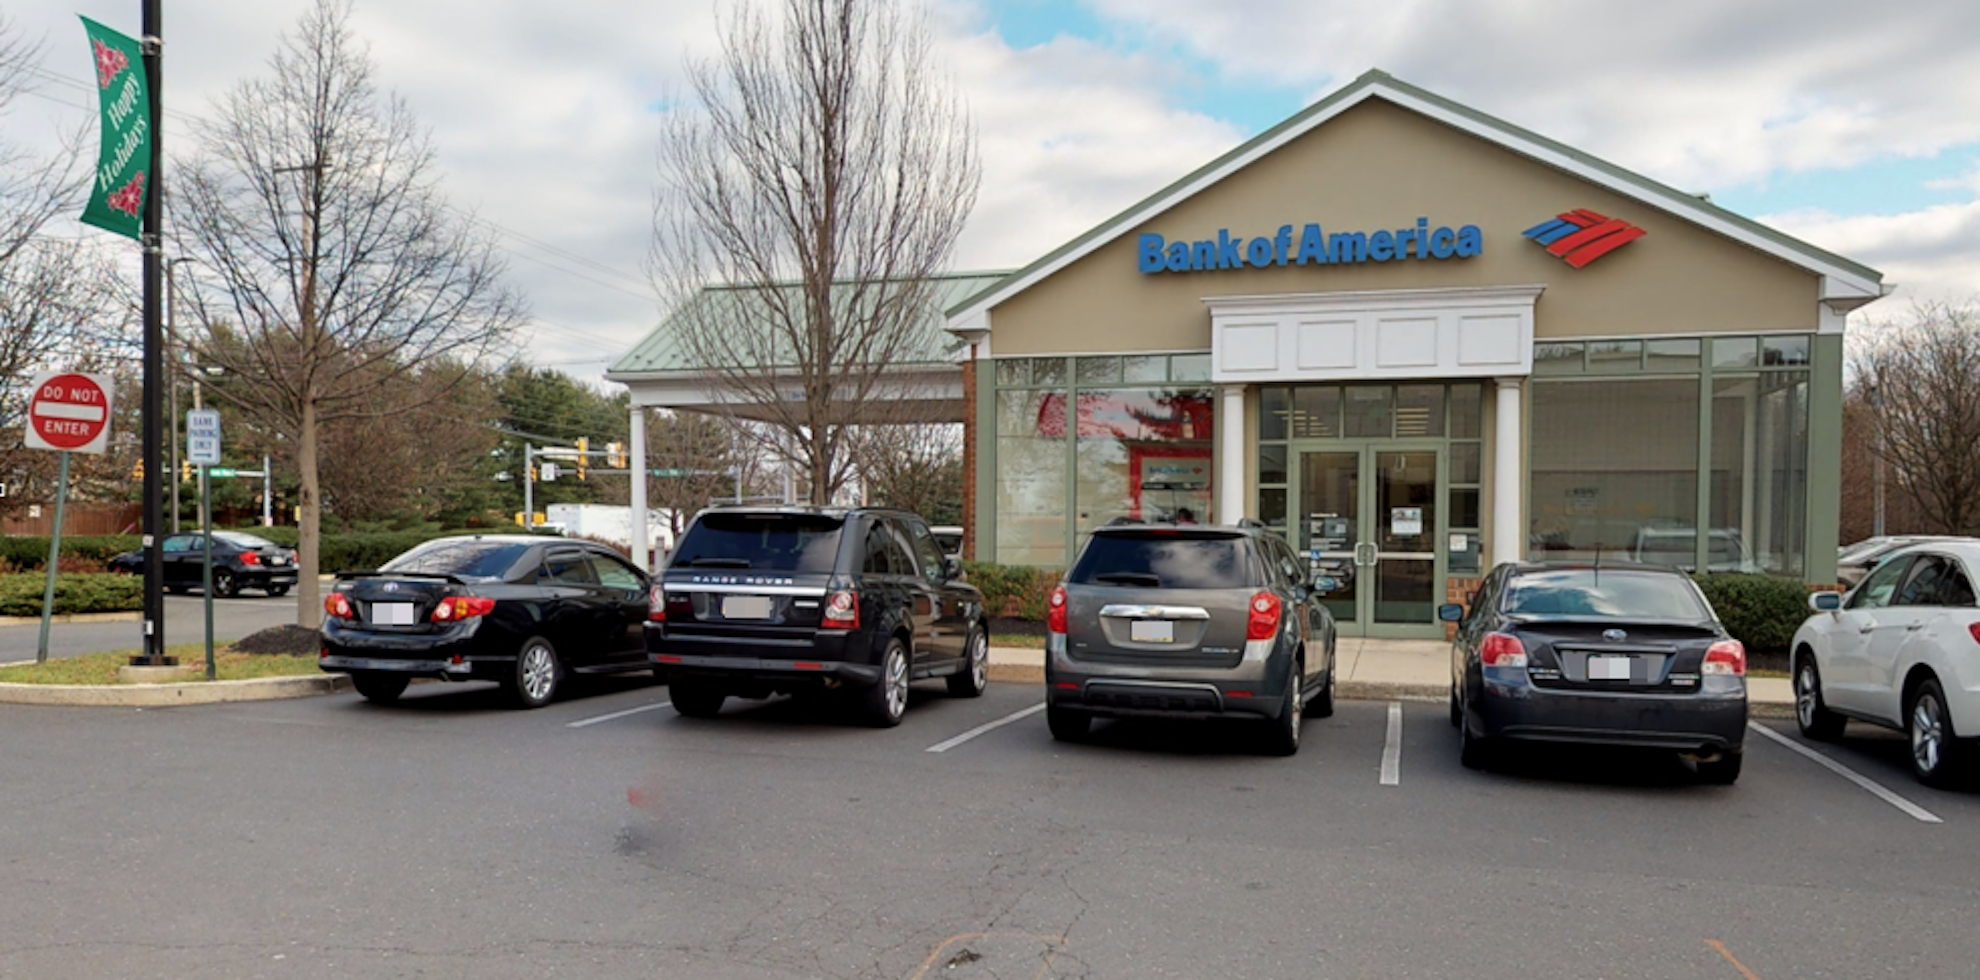 Bank of America financial center with drive-thru ATM   983 N Wales Rd, North Wales, PA 19454